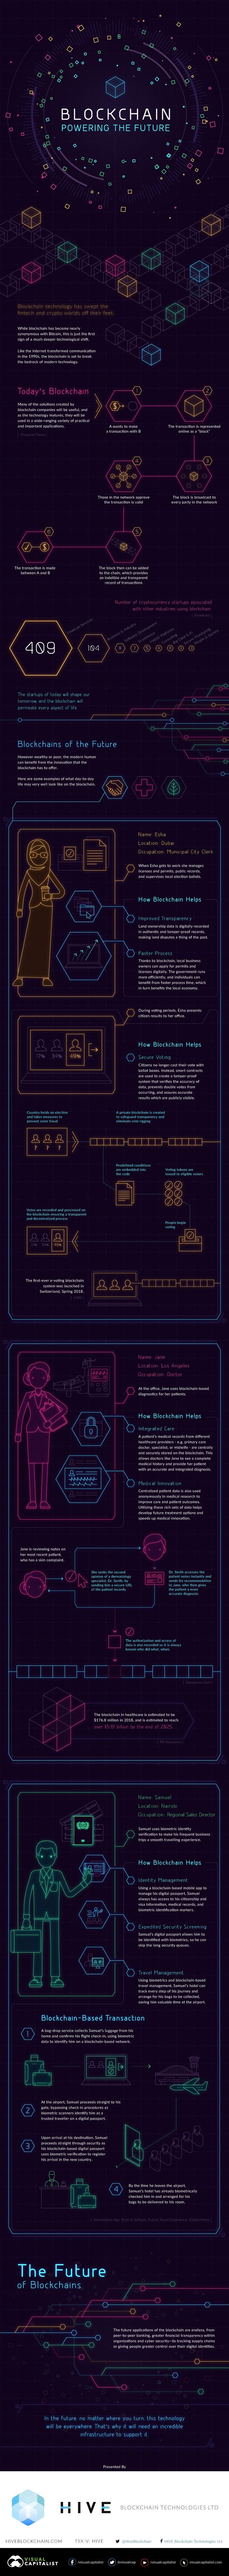 Reimagining the Future in 'Blocks': The Power of Blockchain Technology – Infographic